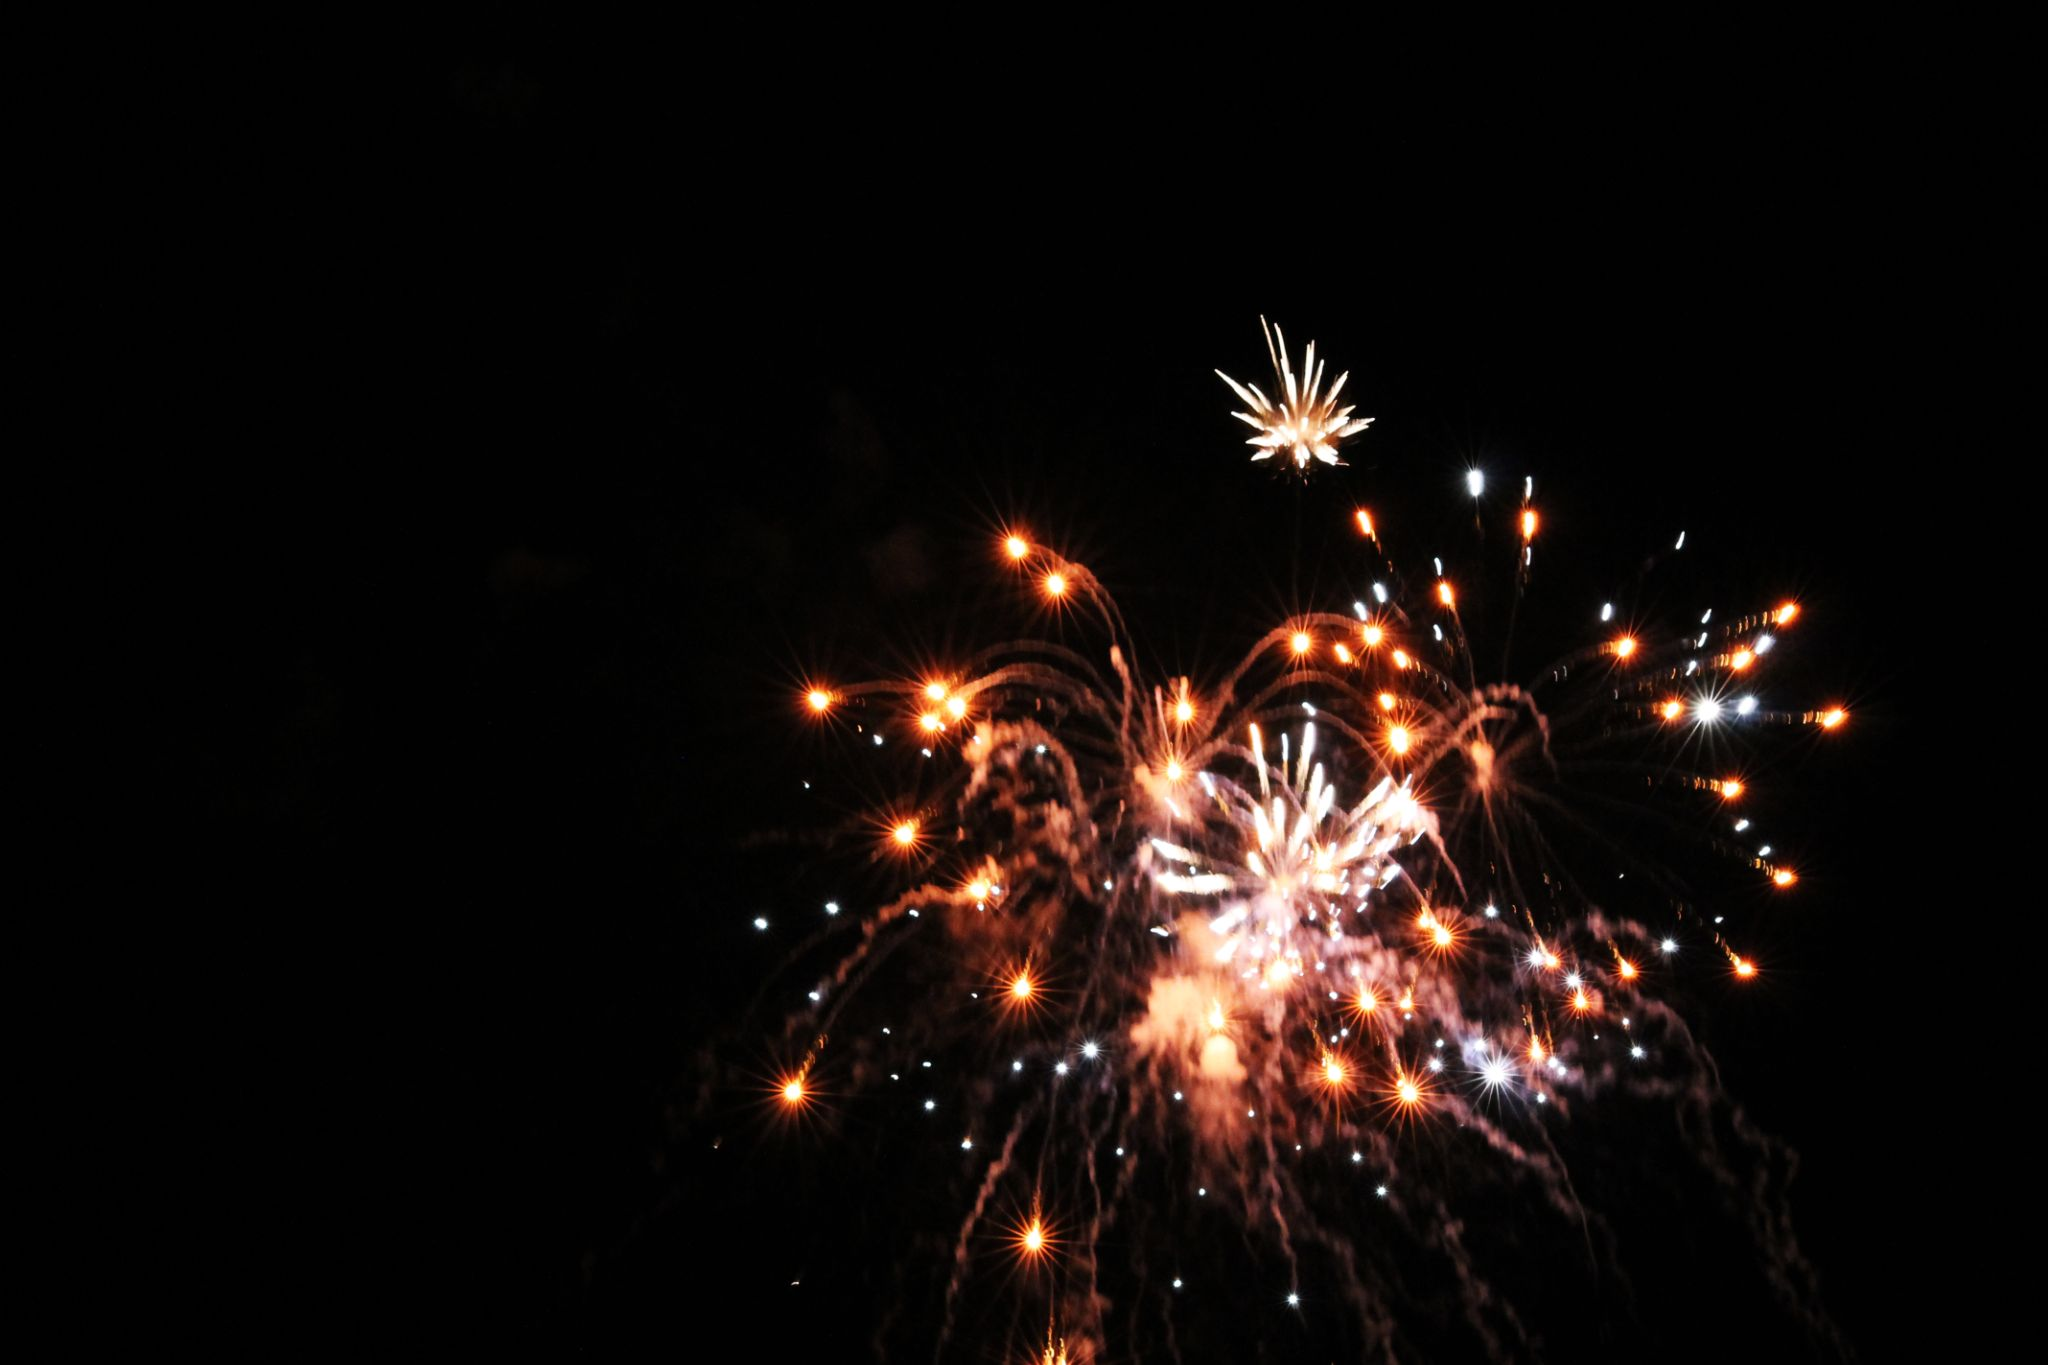 Fireworks 2 by Max Jany